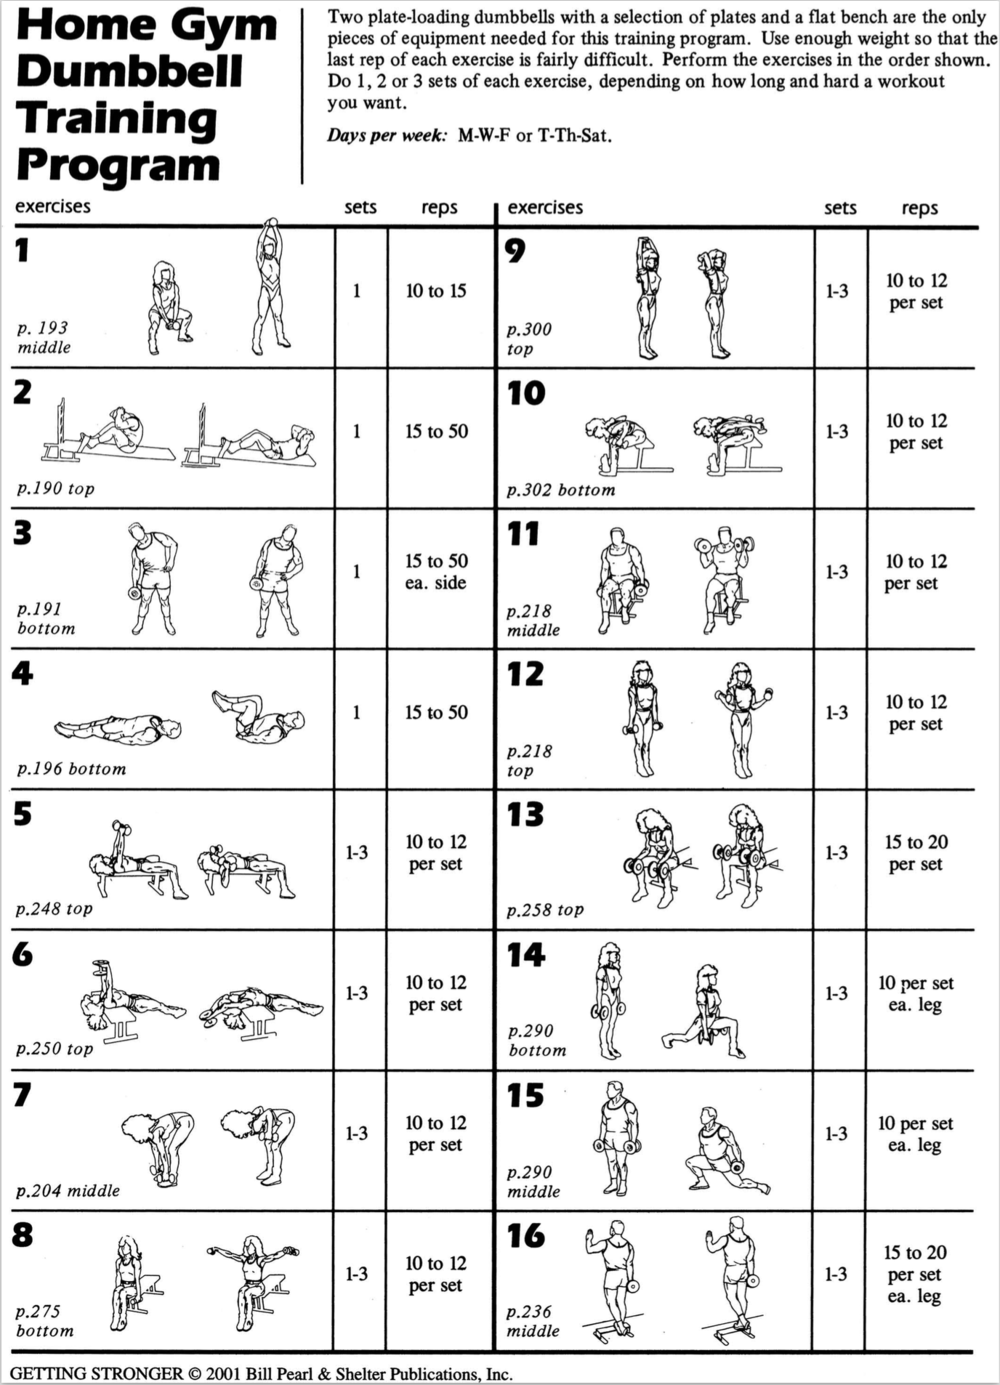 image regarding Printable Workout Plans for Beginners titled Health Method For Rookies Pdf Exercise and Exercise routine